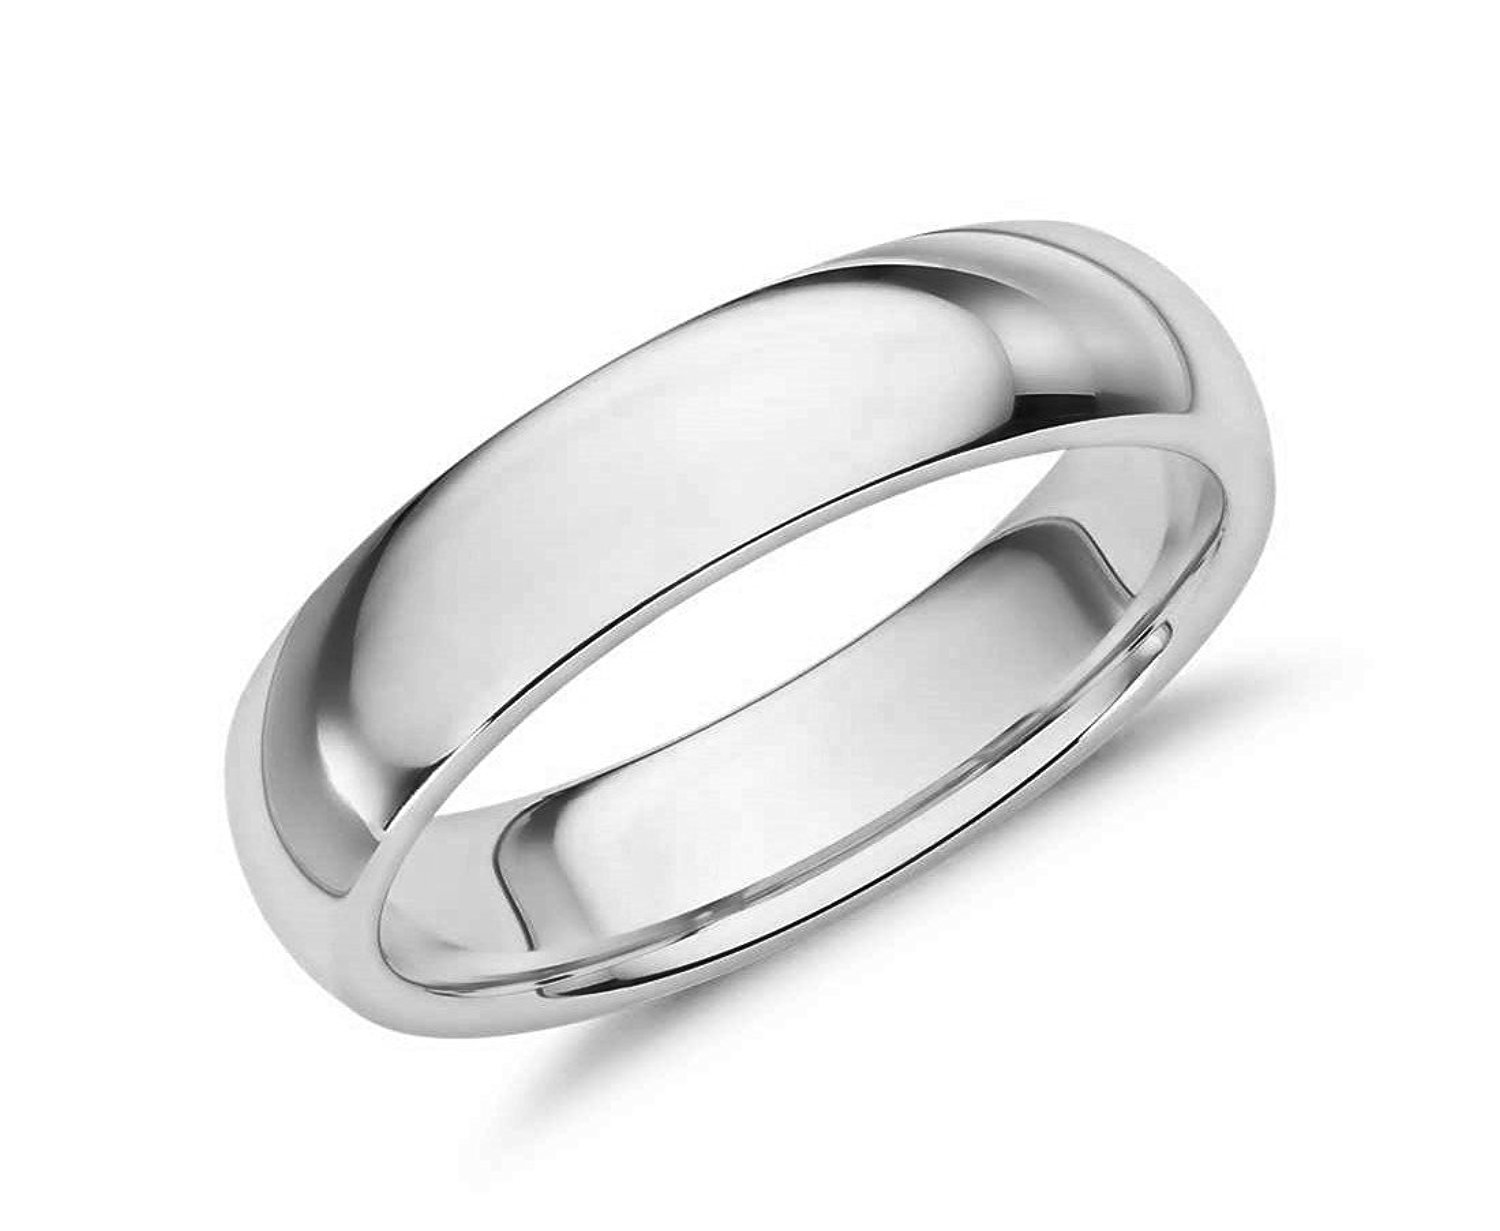 MCS Jewelry 14 Karat Gold Men's and Women's Plain Wedding Band Ring 8MM Comfort-Fit Light (white-gold, 10) by MCS Jewelry